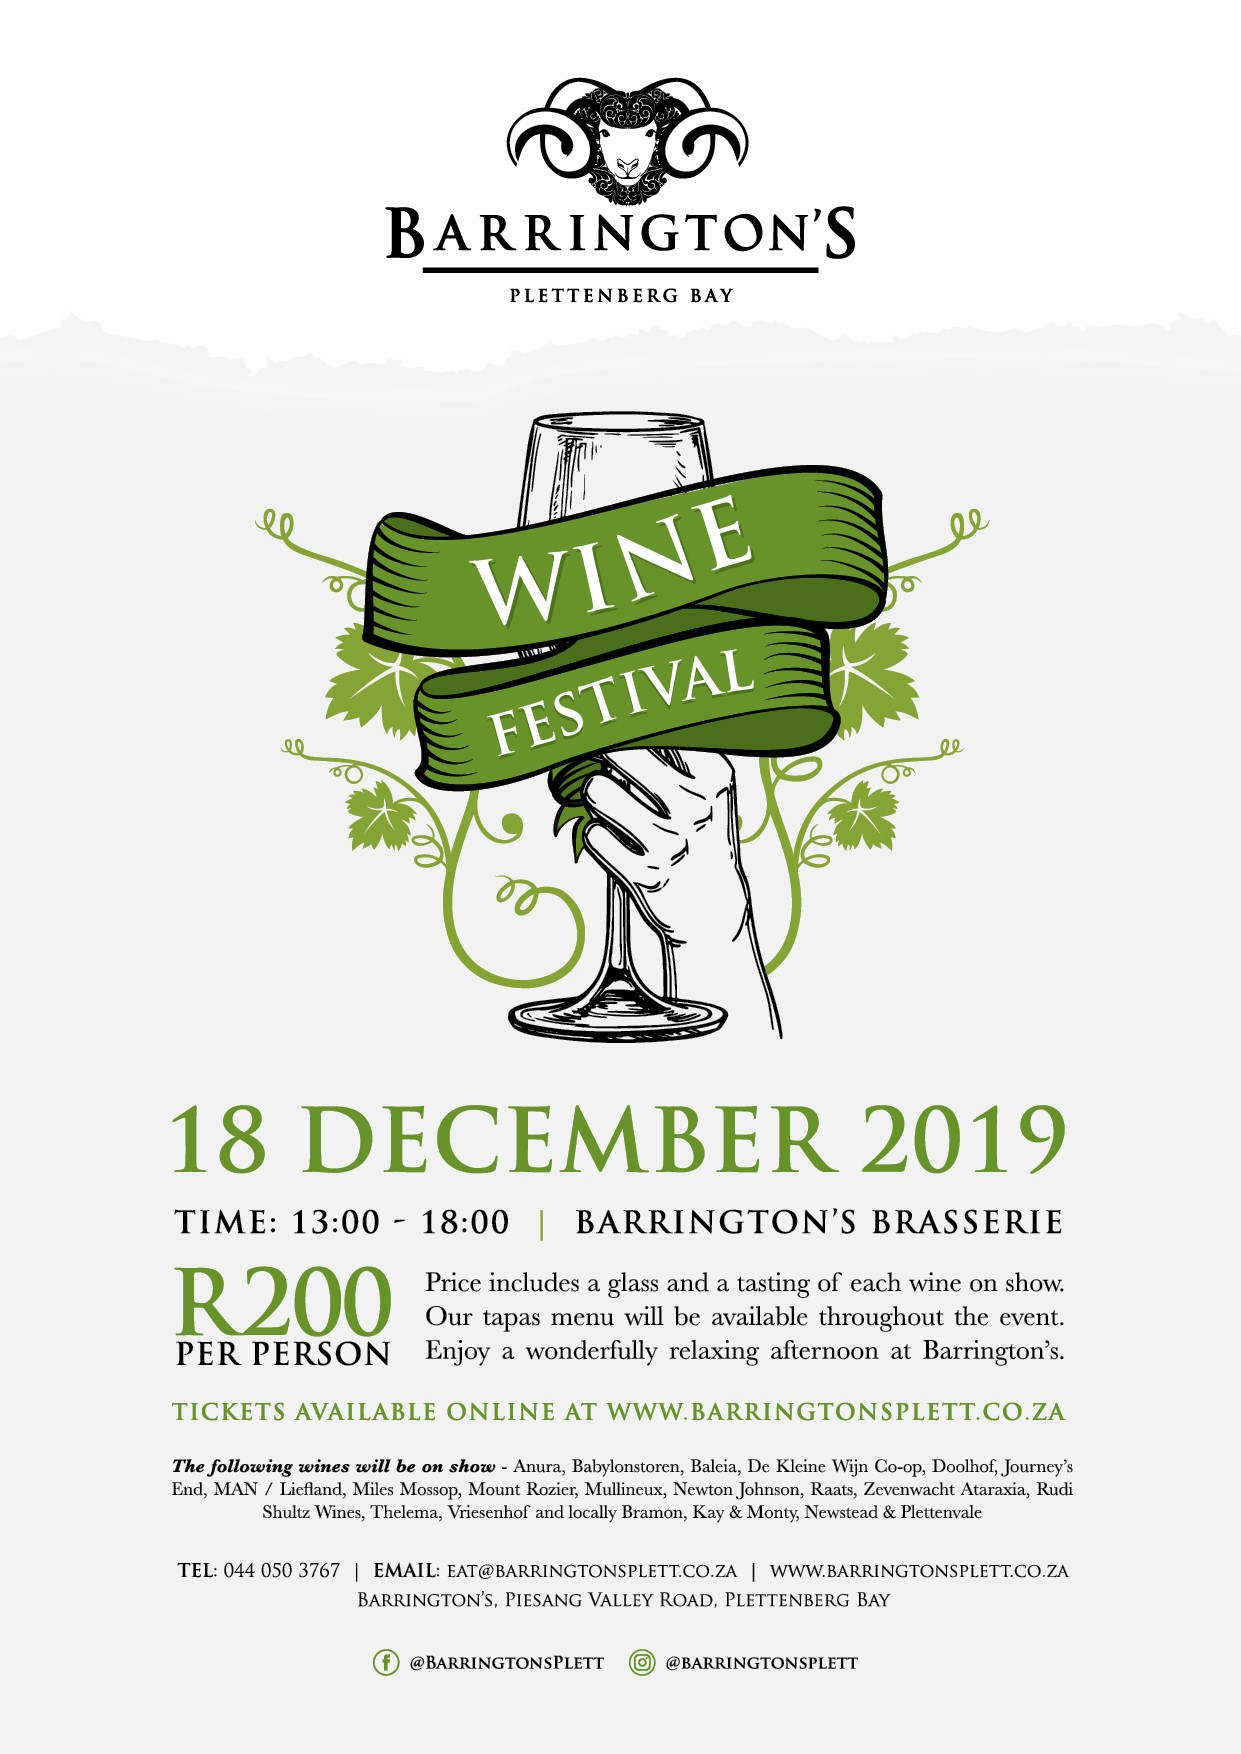 Barrinton's Wine Festival Plett Dec 2019